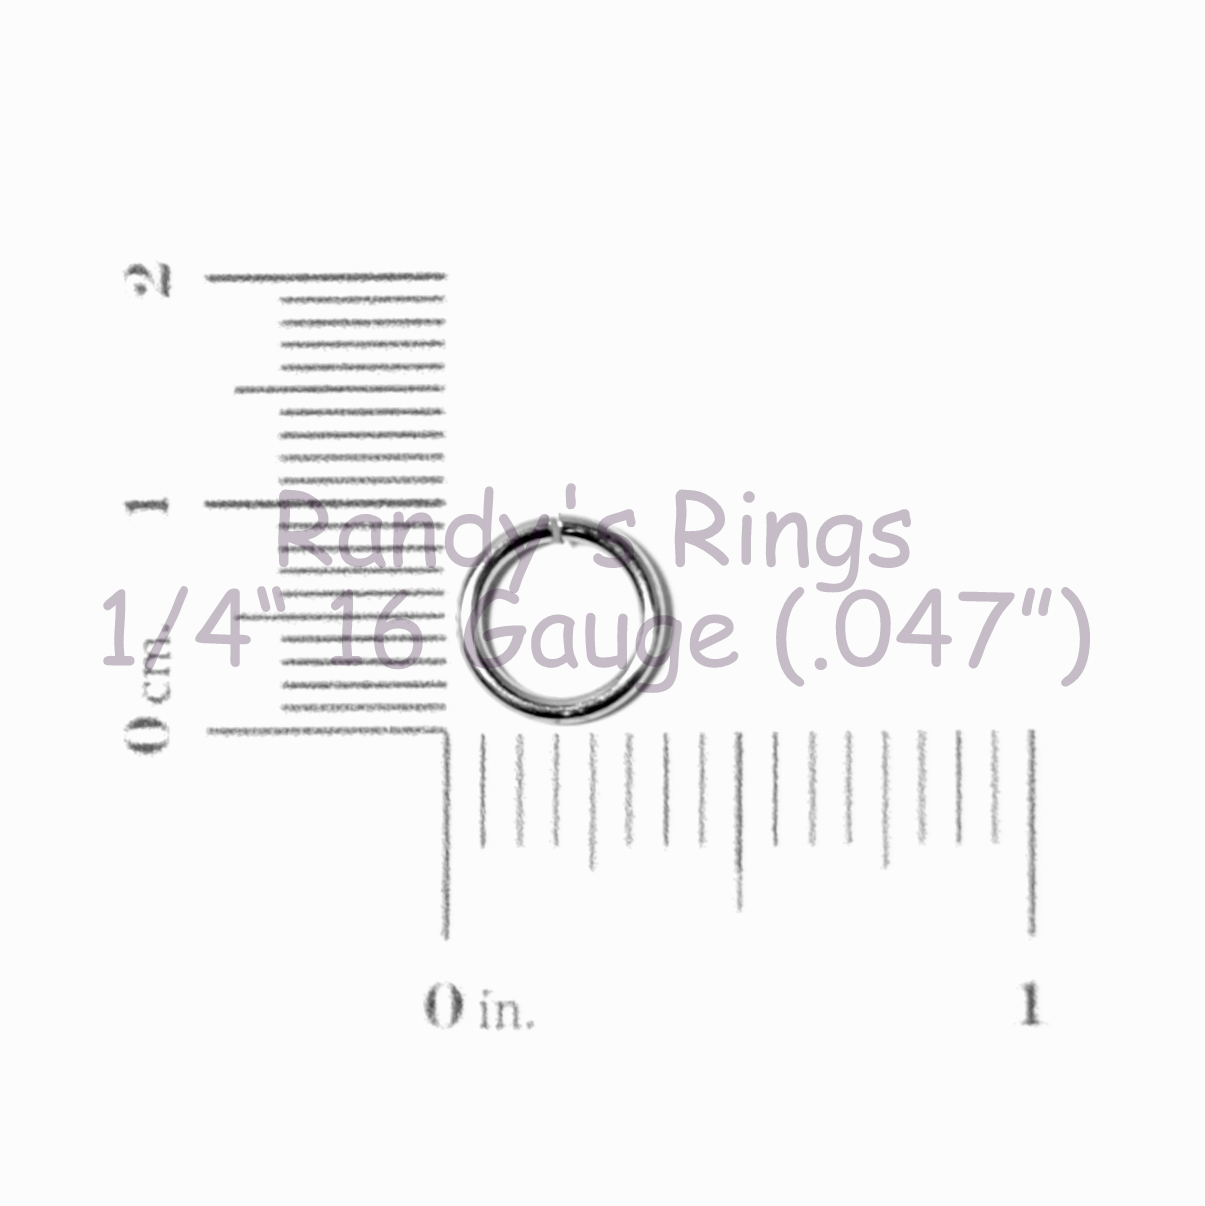 Randy S Rings Gt 1 4 16 Gauge 047 Jump Rings 1 000